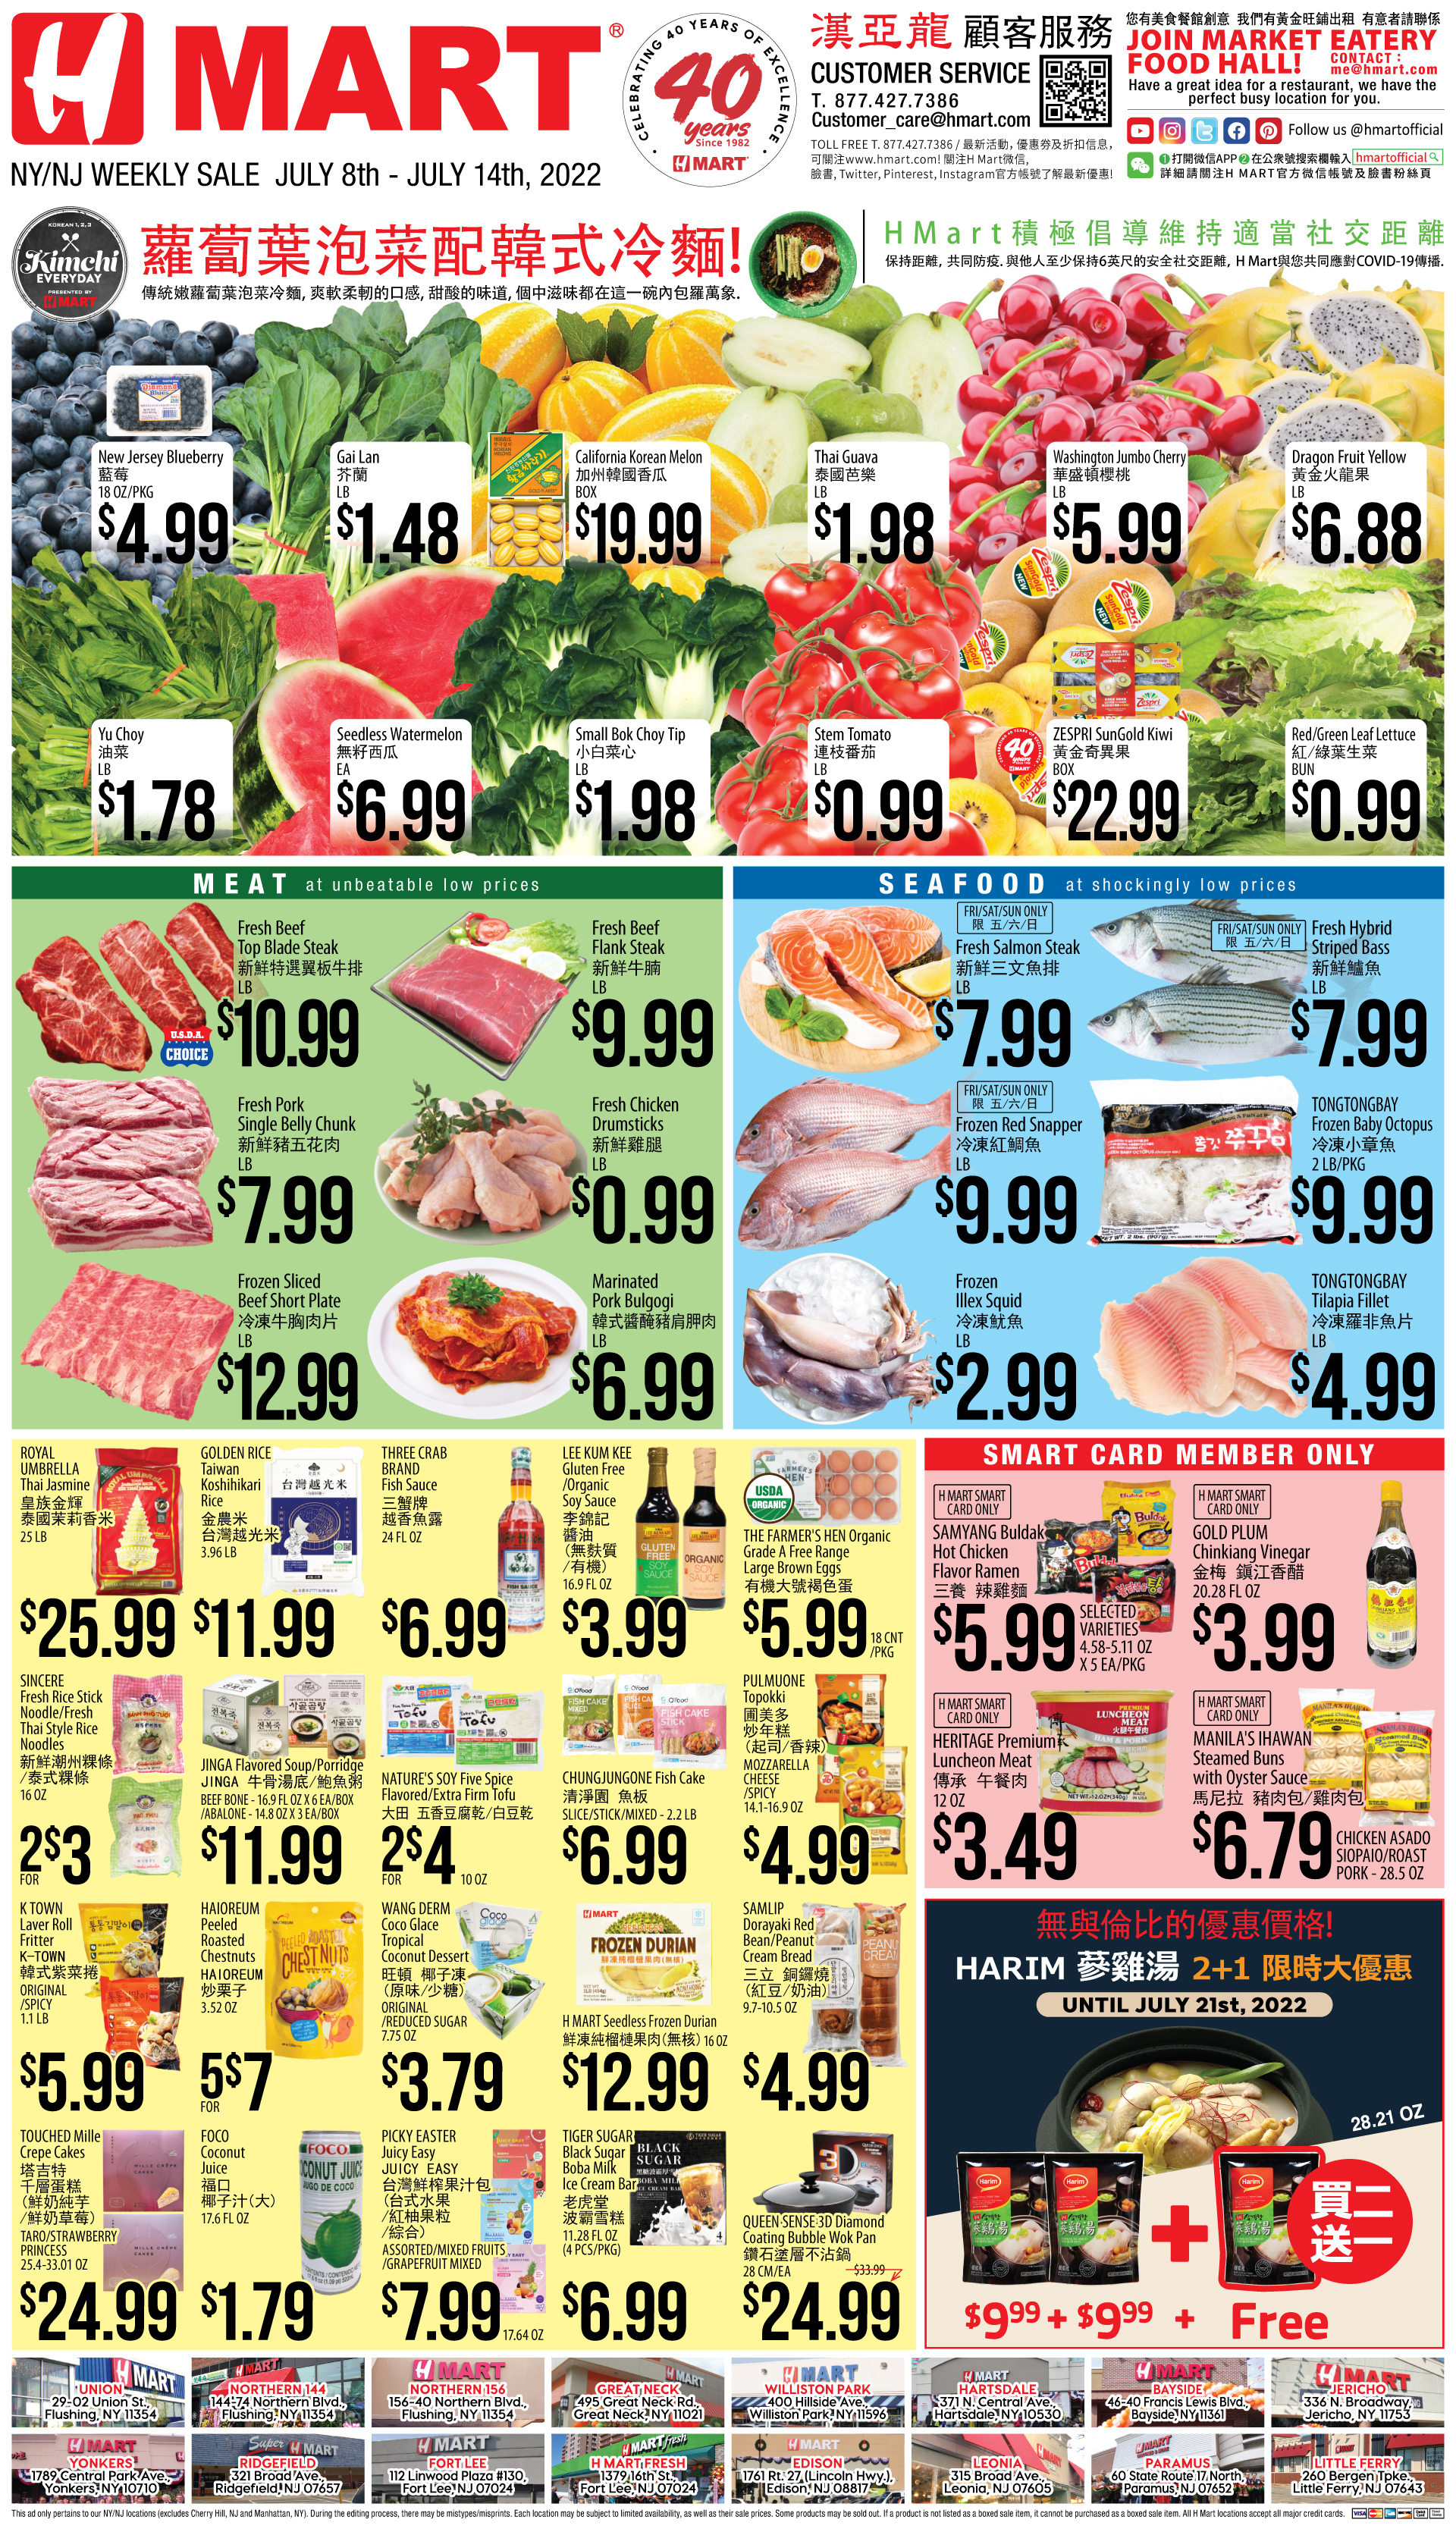 Weekly sales on New York & New Jersey